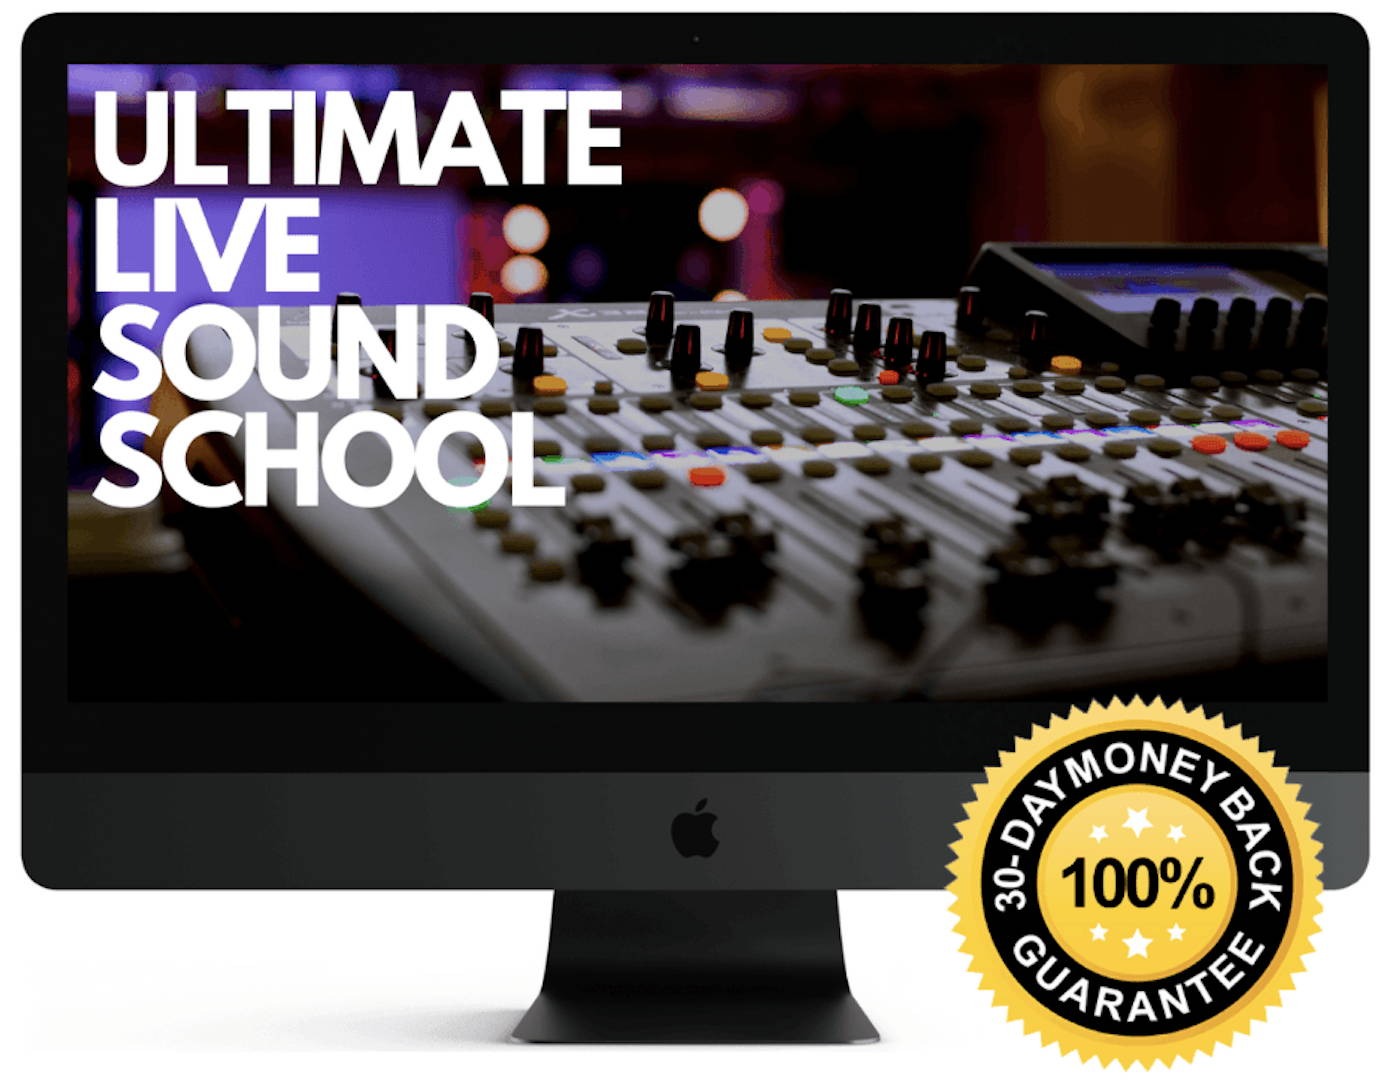 ProAudioExp offers exclusive online training for musicians worldwide